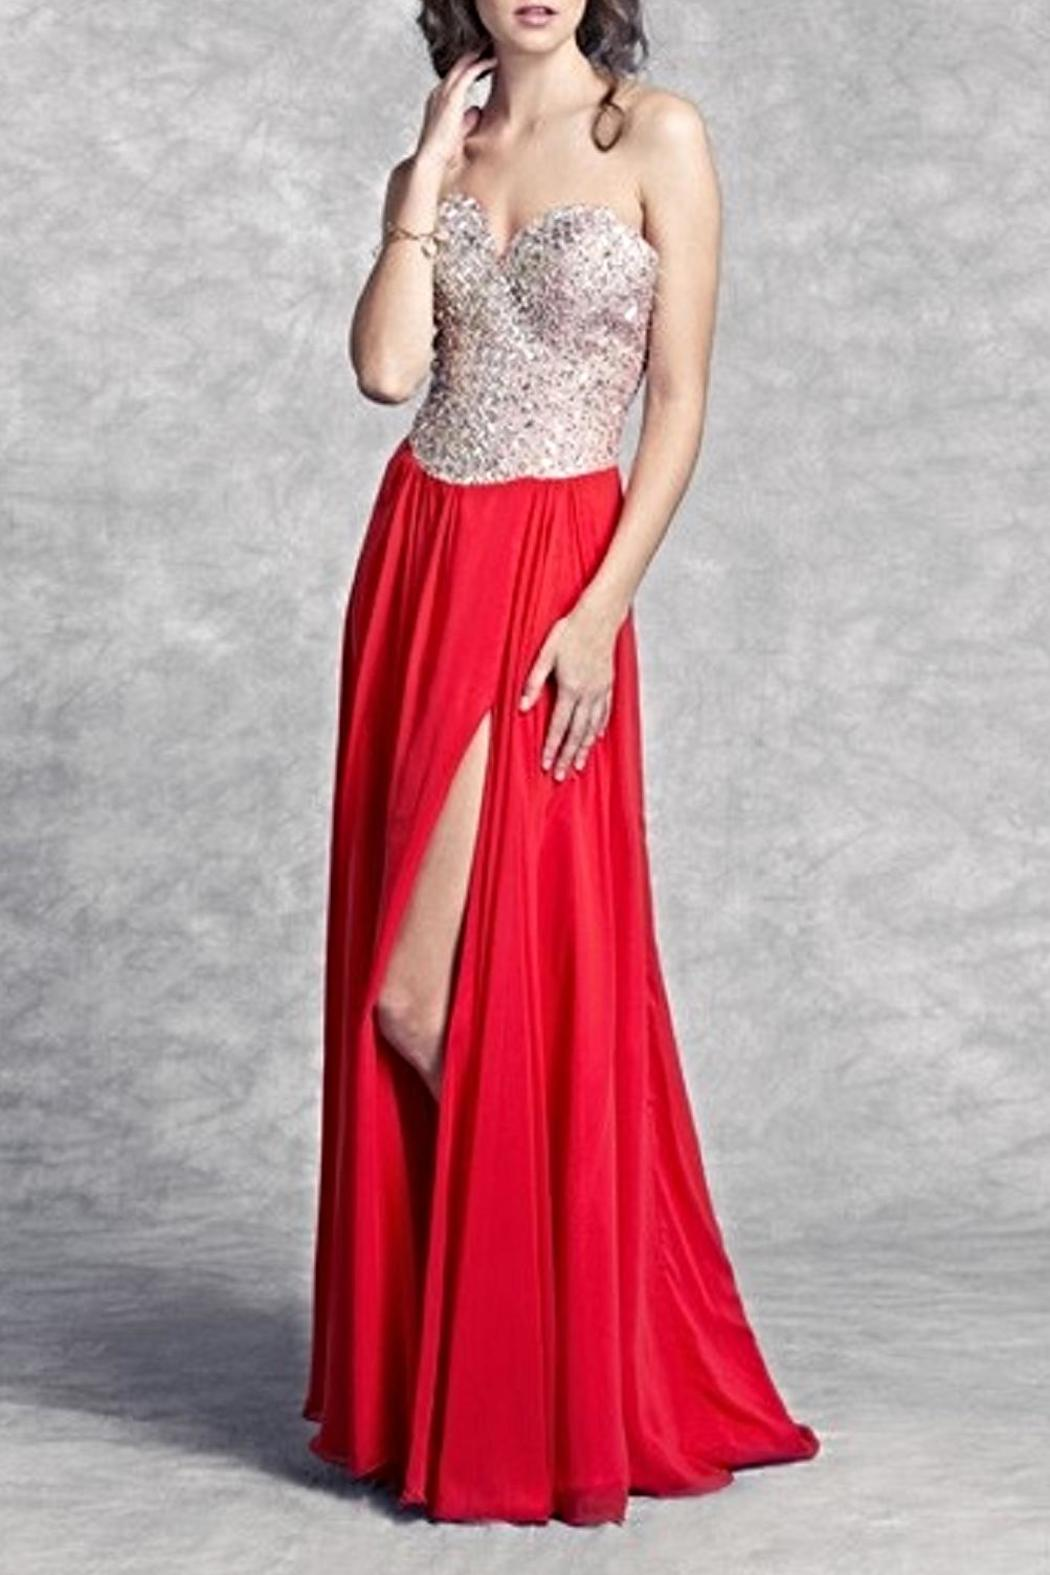 Aspeed Lattice Patterned Bodice Gown - Main Image